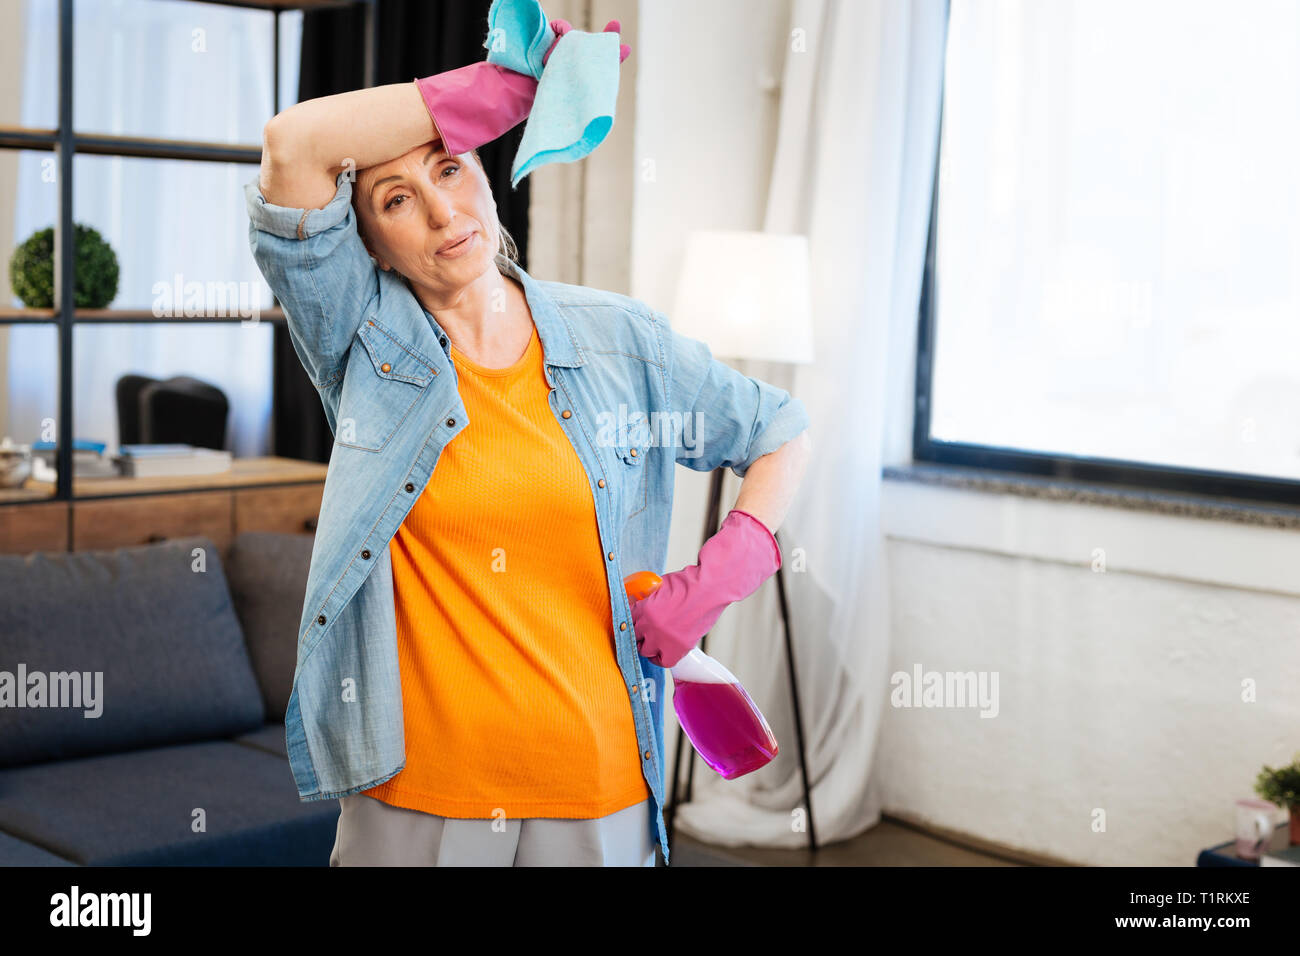 Tired woman in bright t-shirt wiping sweat from her forehead - Stock Image